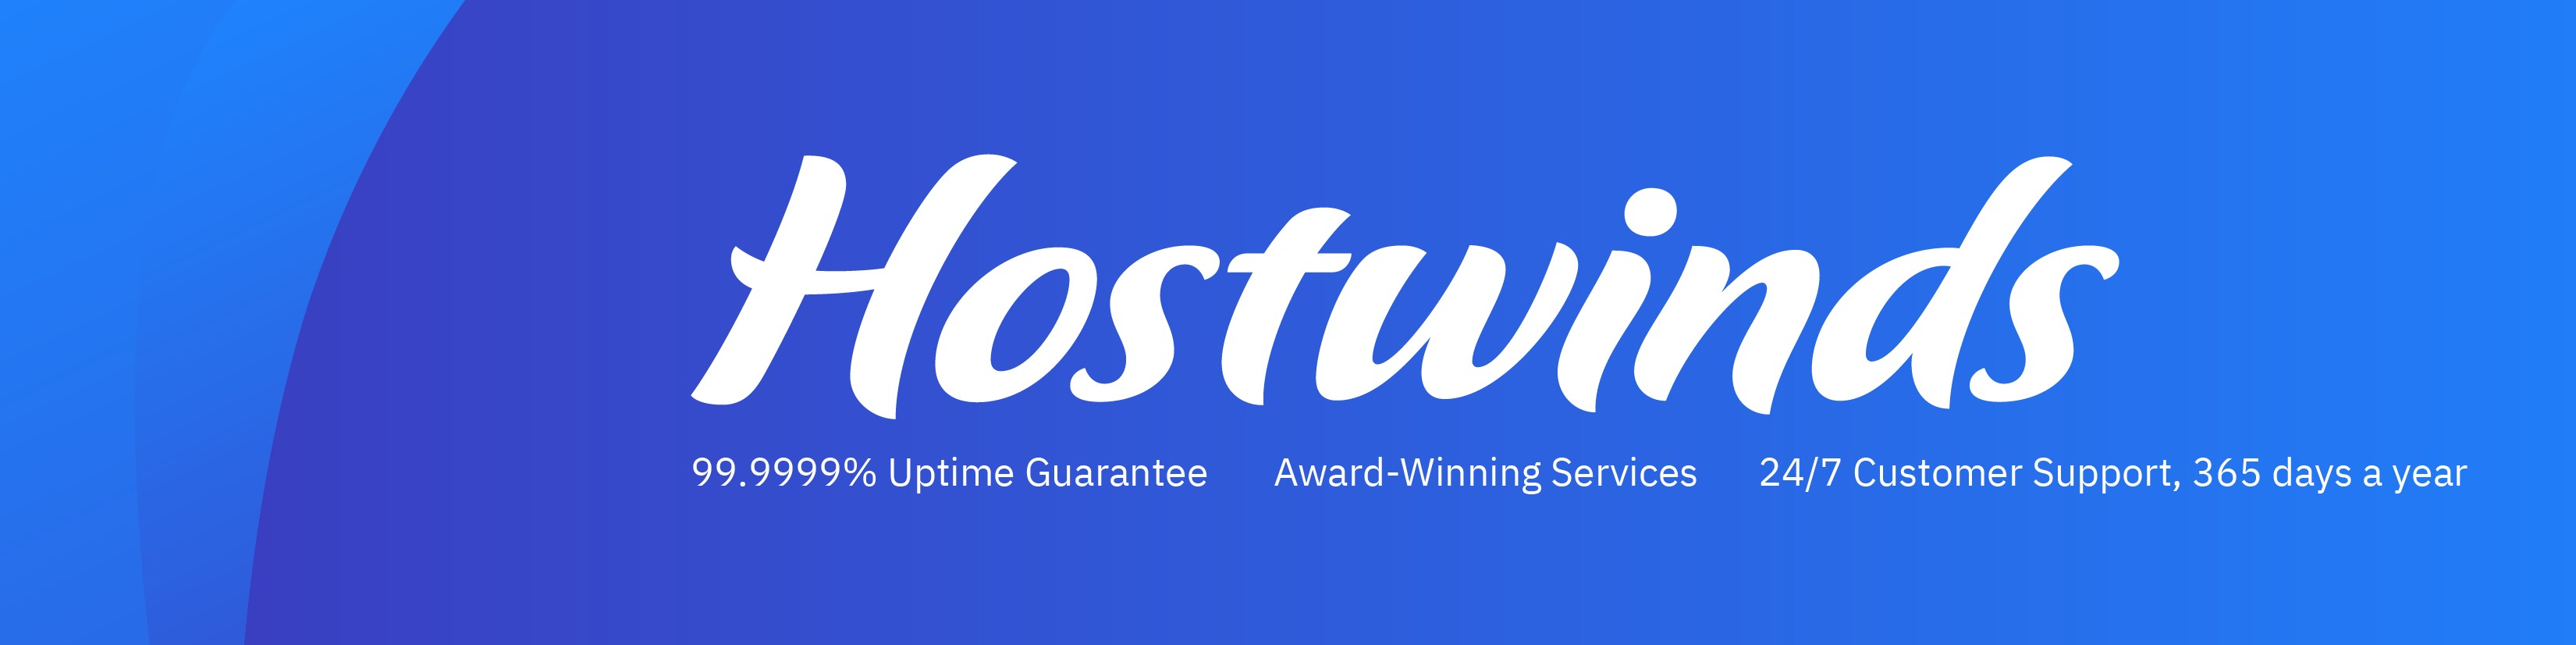 Hostwinds | LinkedIn